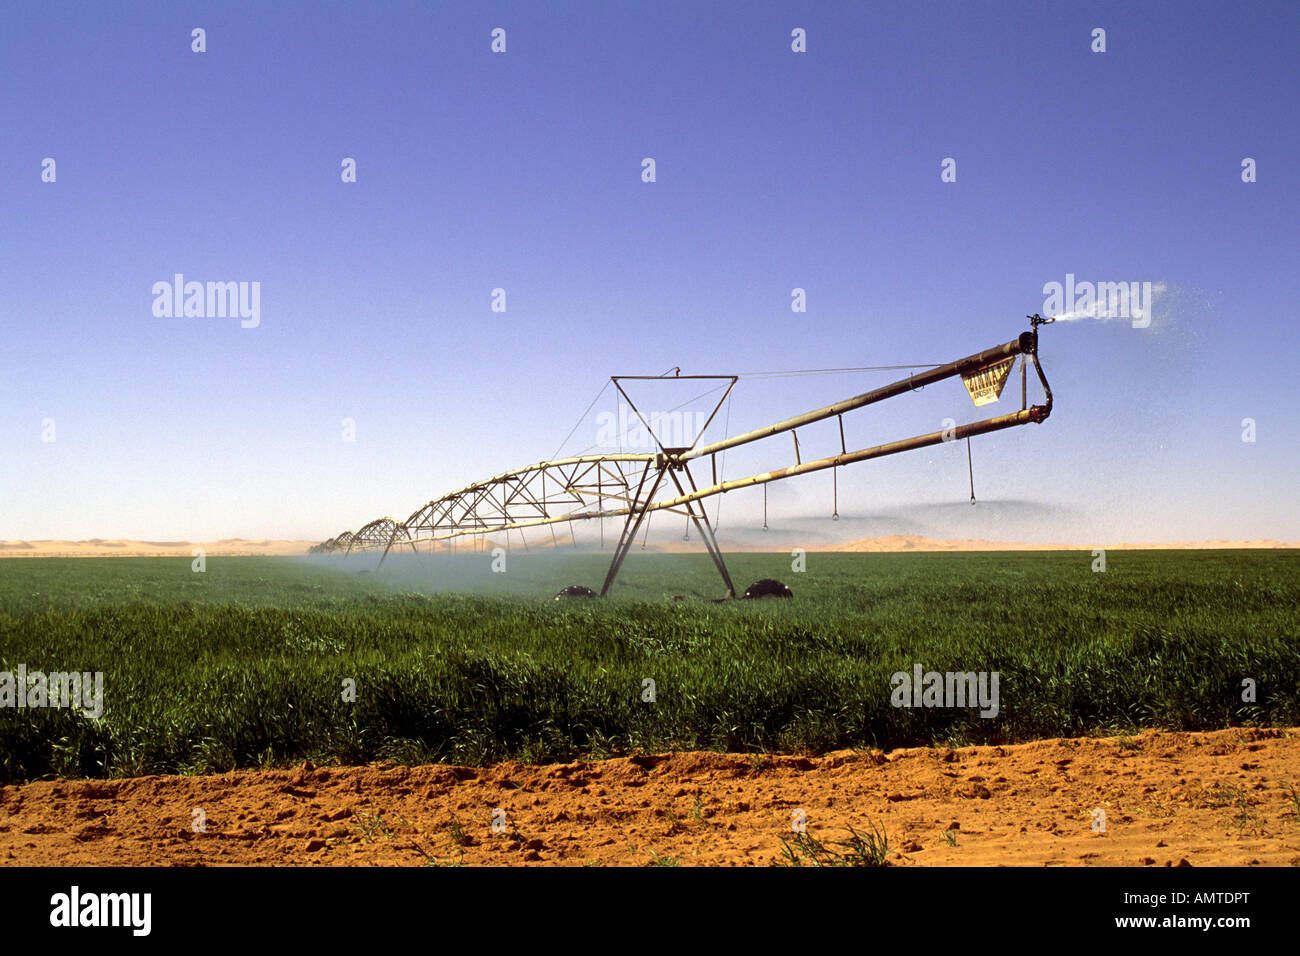 Irrigating a man-made oasis in the Libyan desert - Stock Image